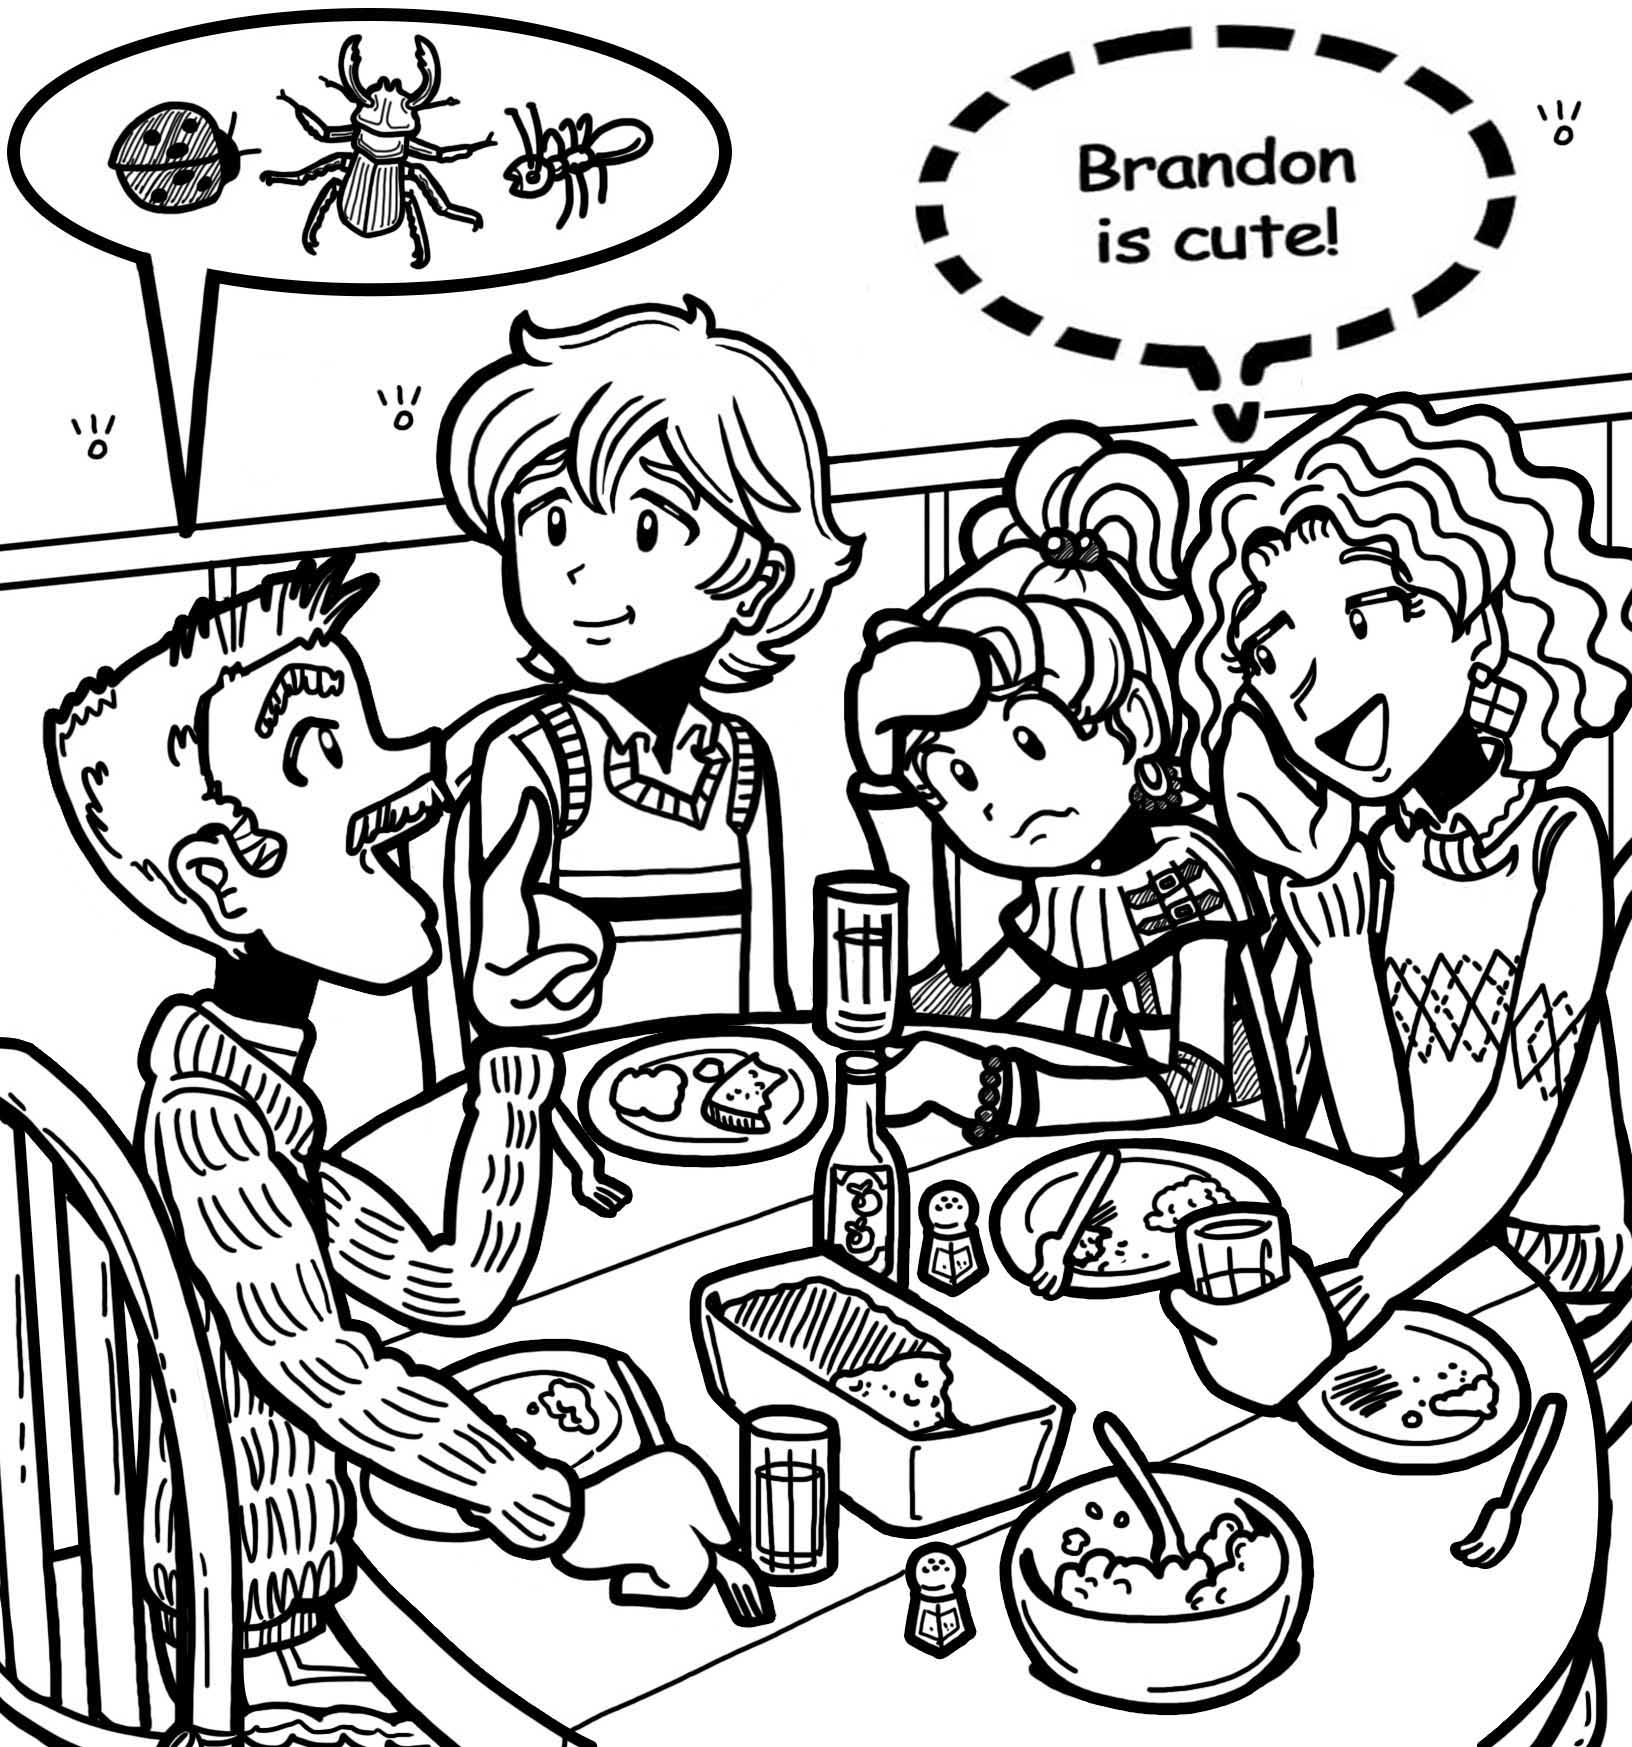 User blog:Dorkdiariesfan3/Dork Diaries not so happily ever